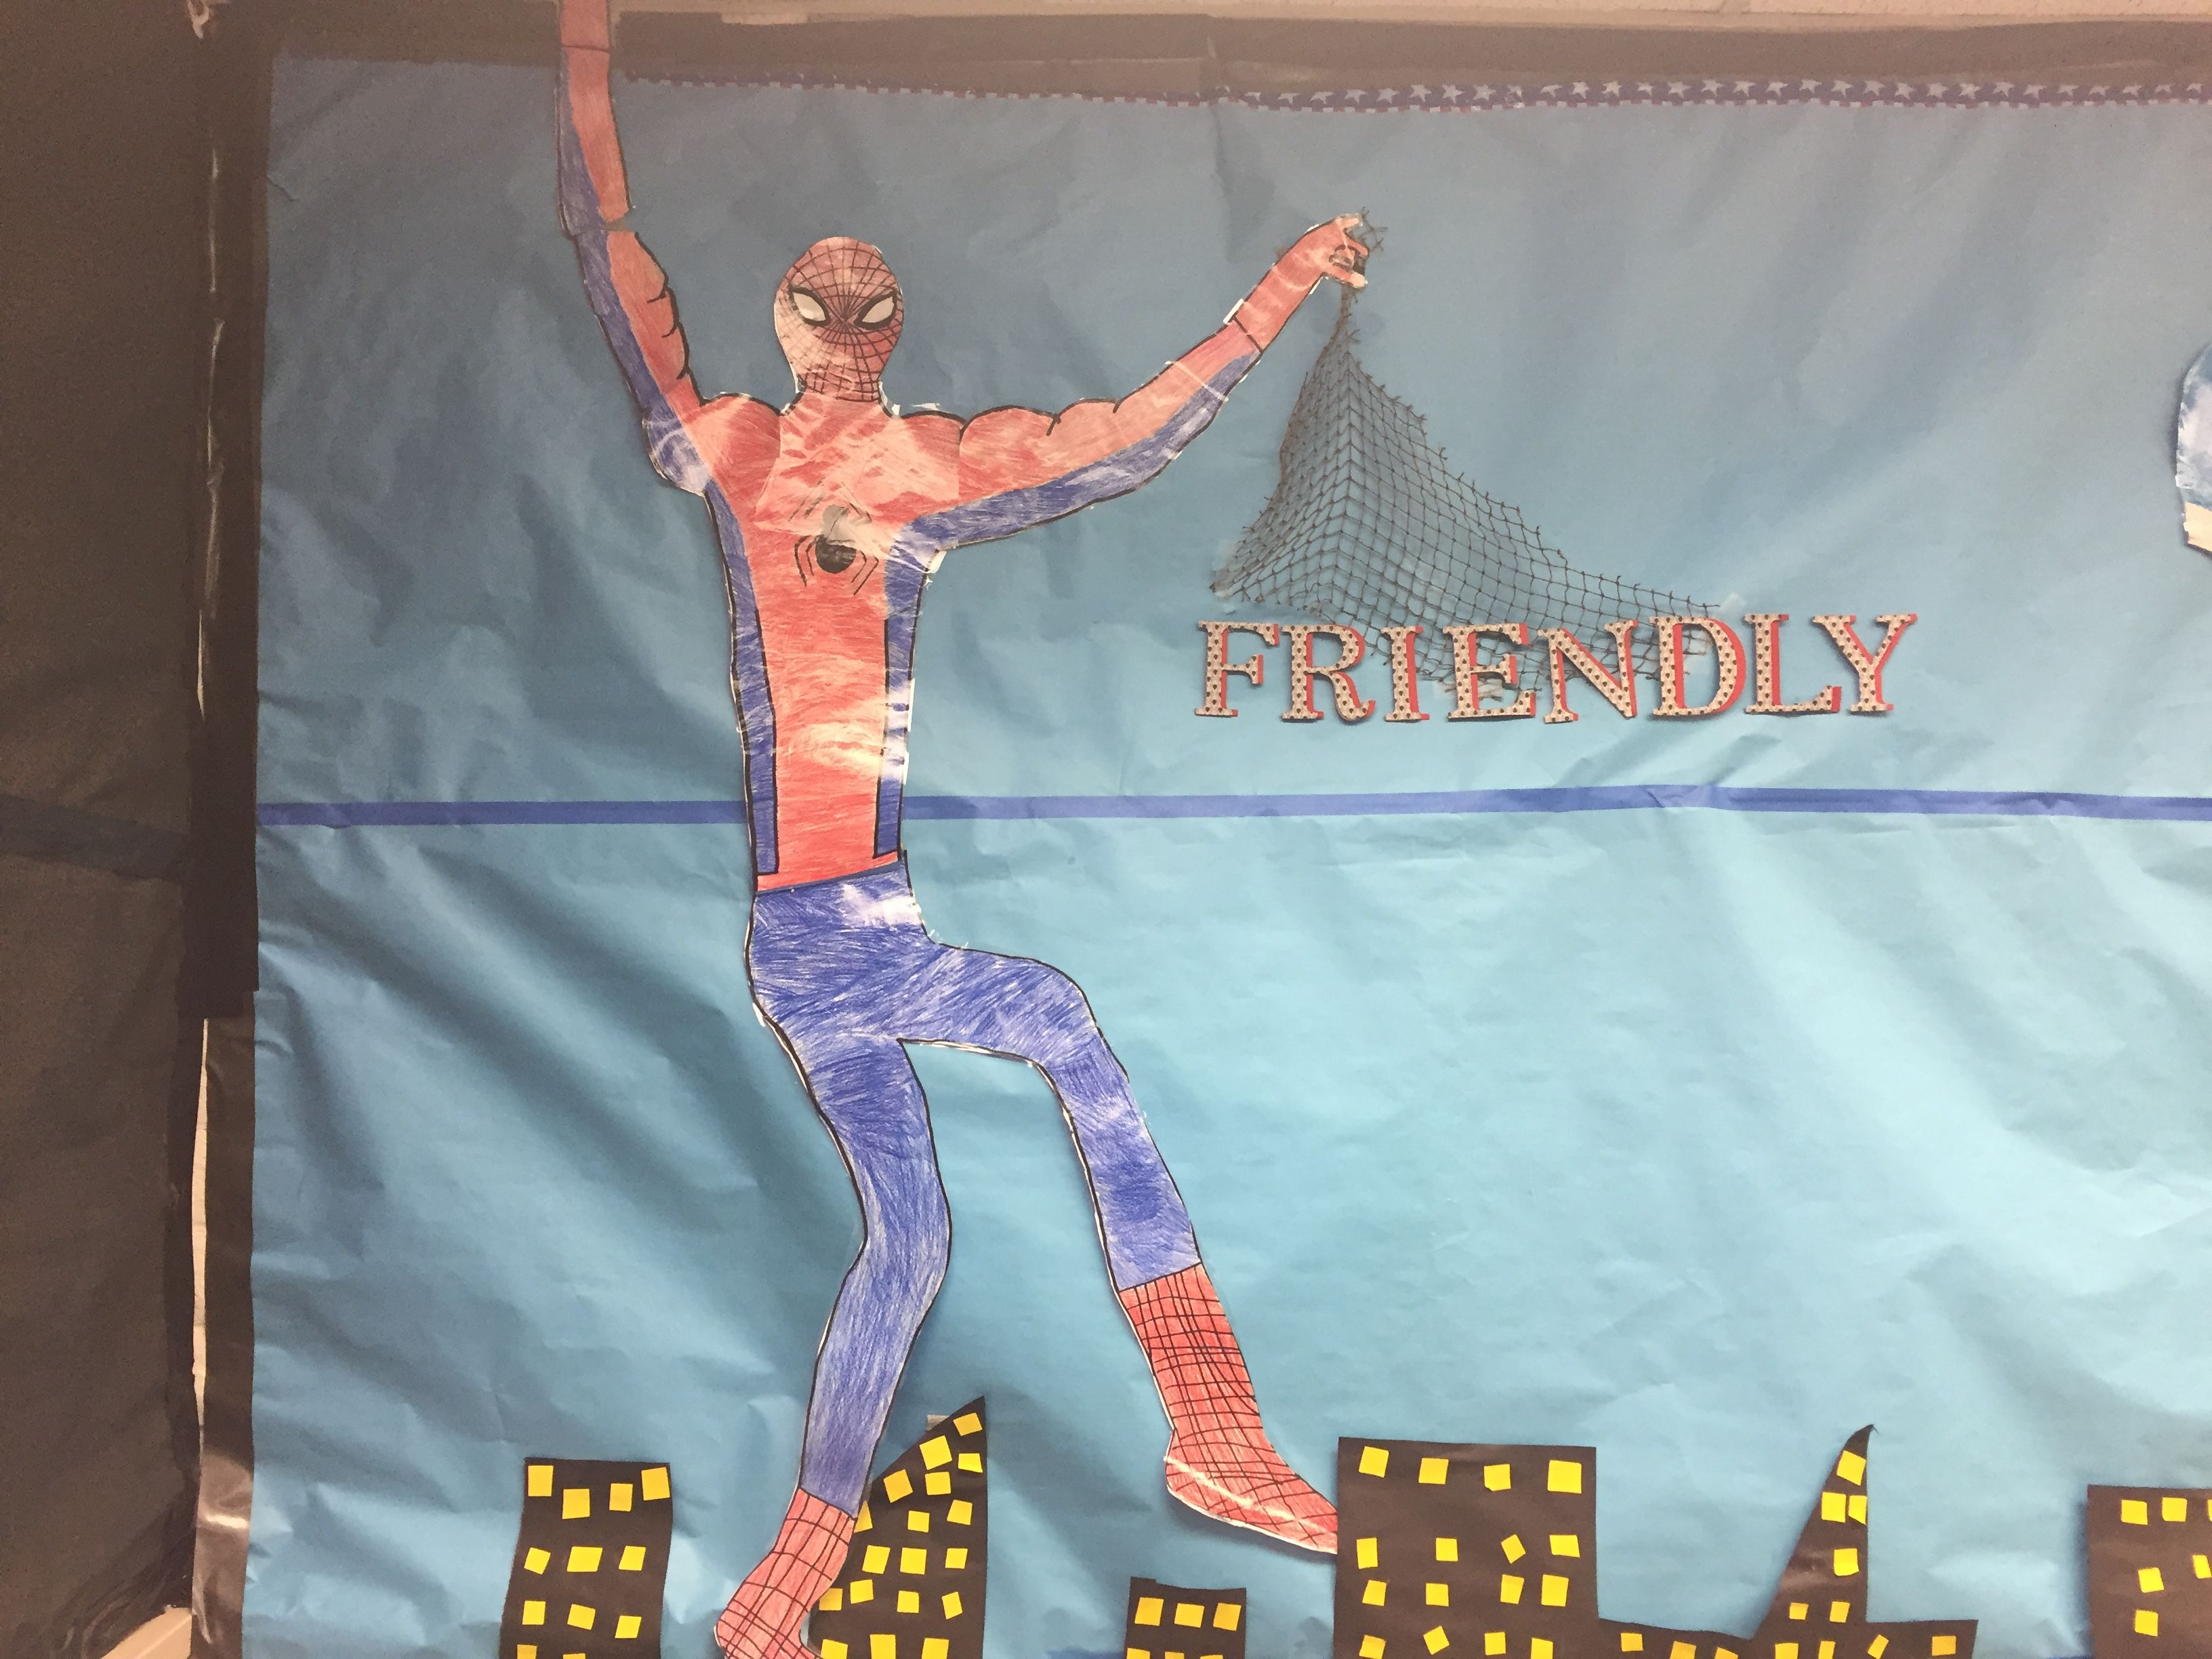 Spider Man Promoting Our Pillar Of Being Friendly In The